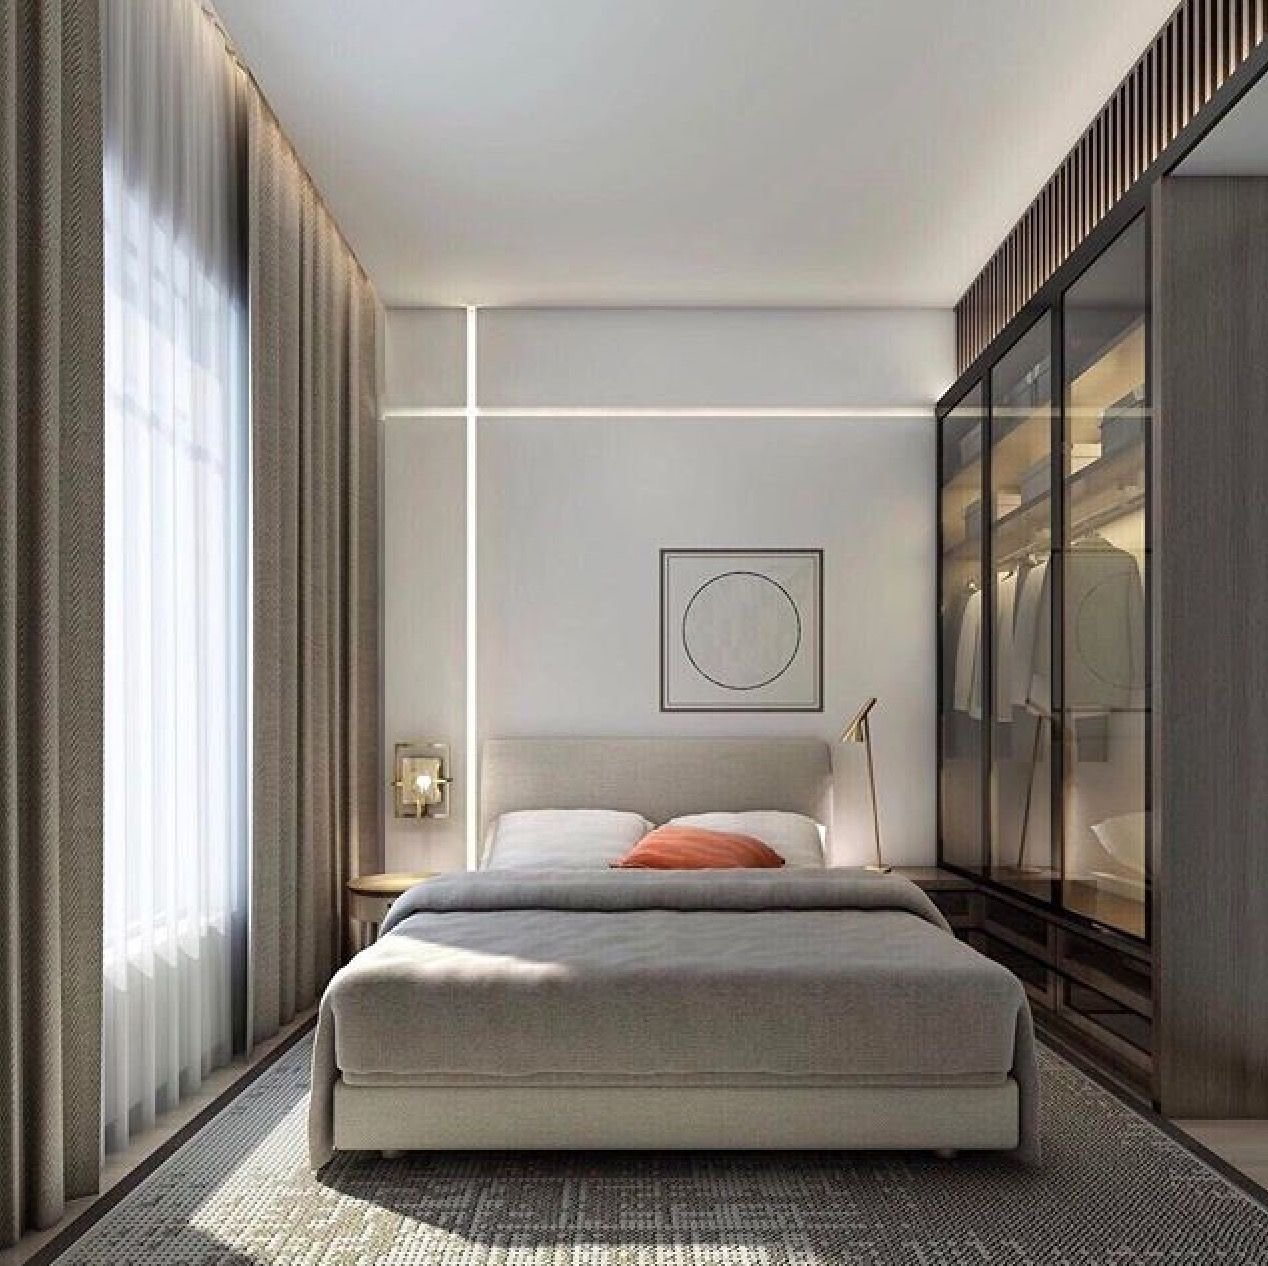 Best Bedroom Bedrooms In 2019 Modern Bedroom Design Home Decor Bedroom Small Bedroom Designs With Pictures